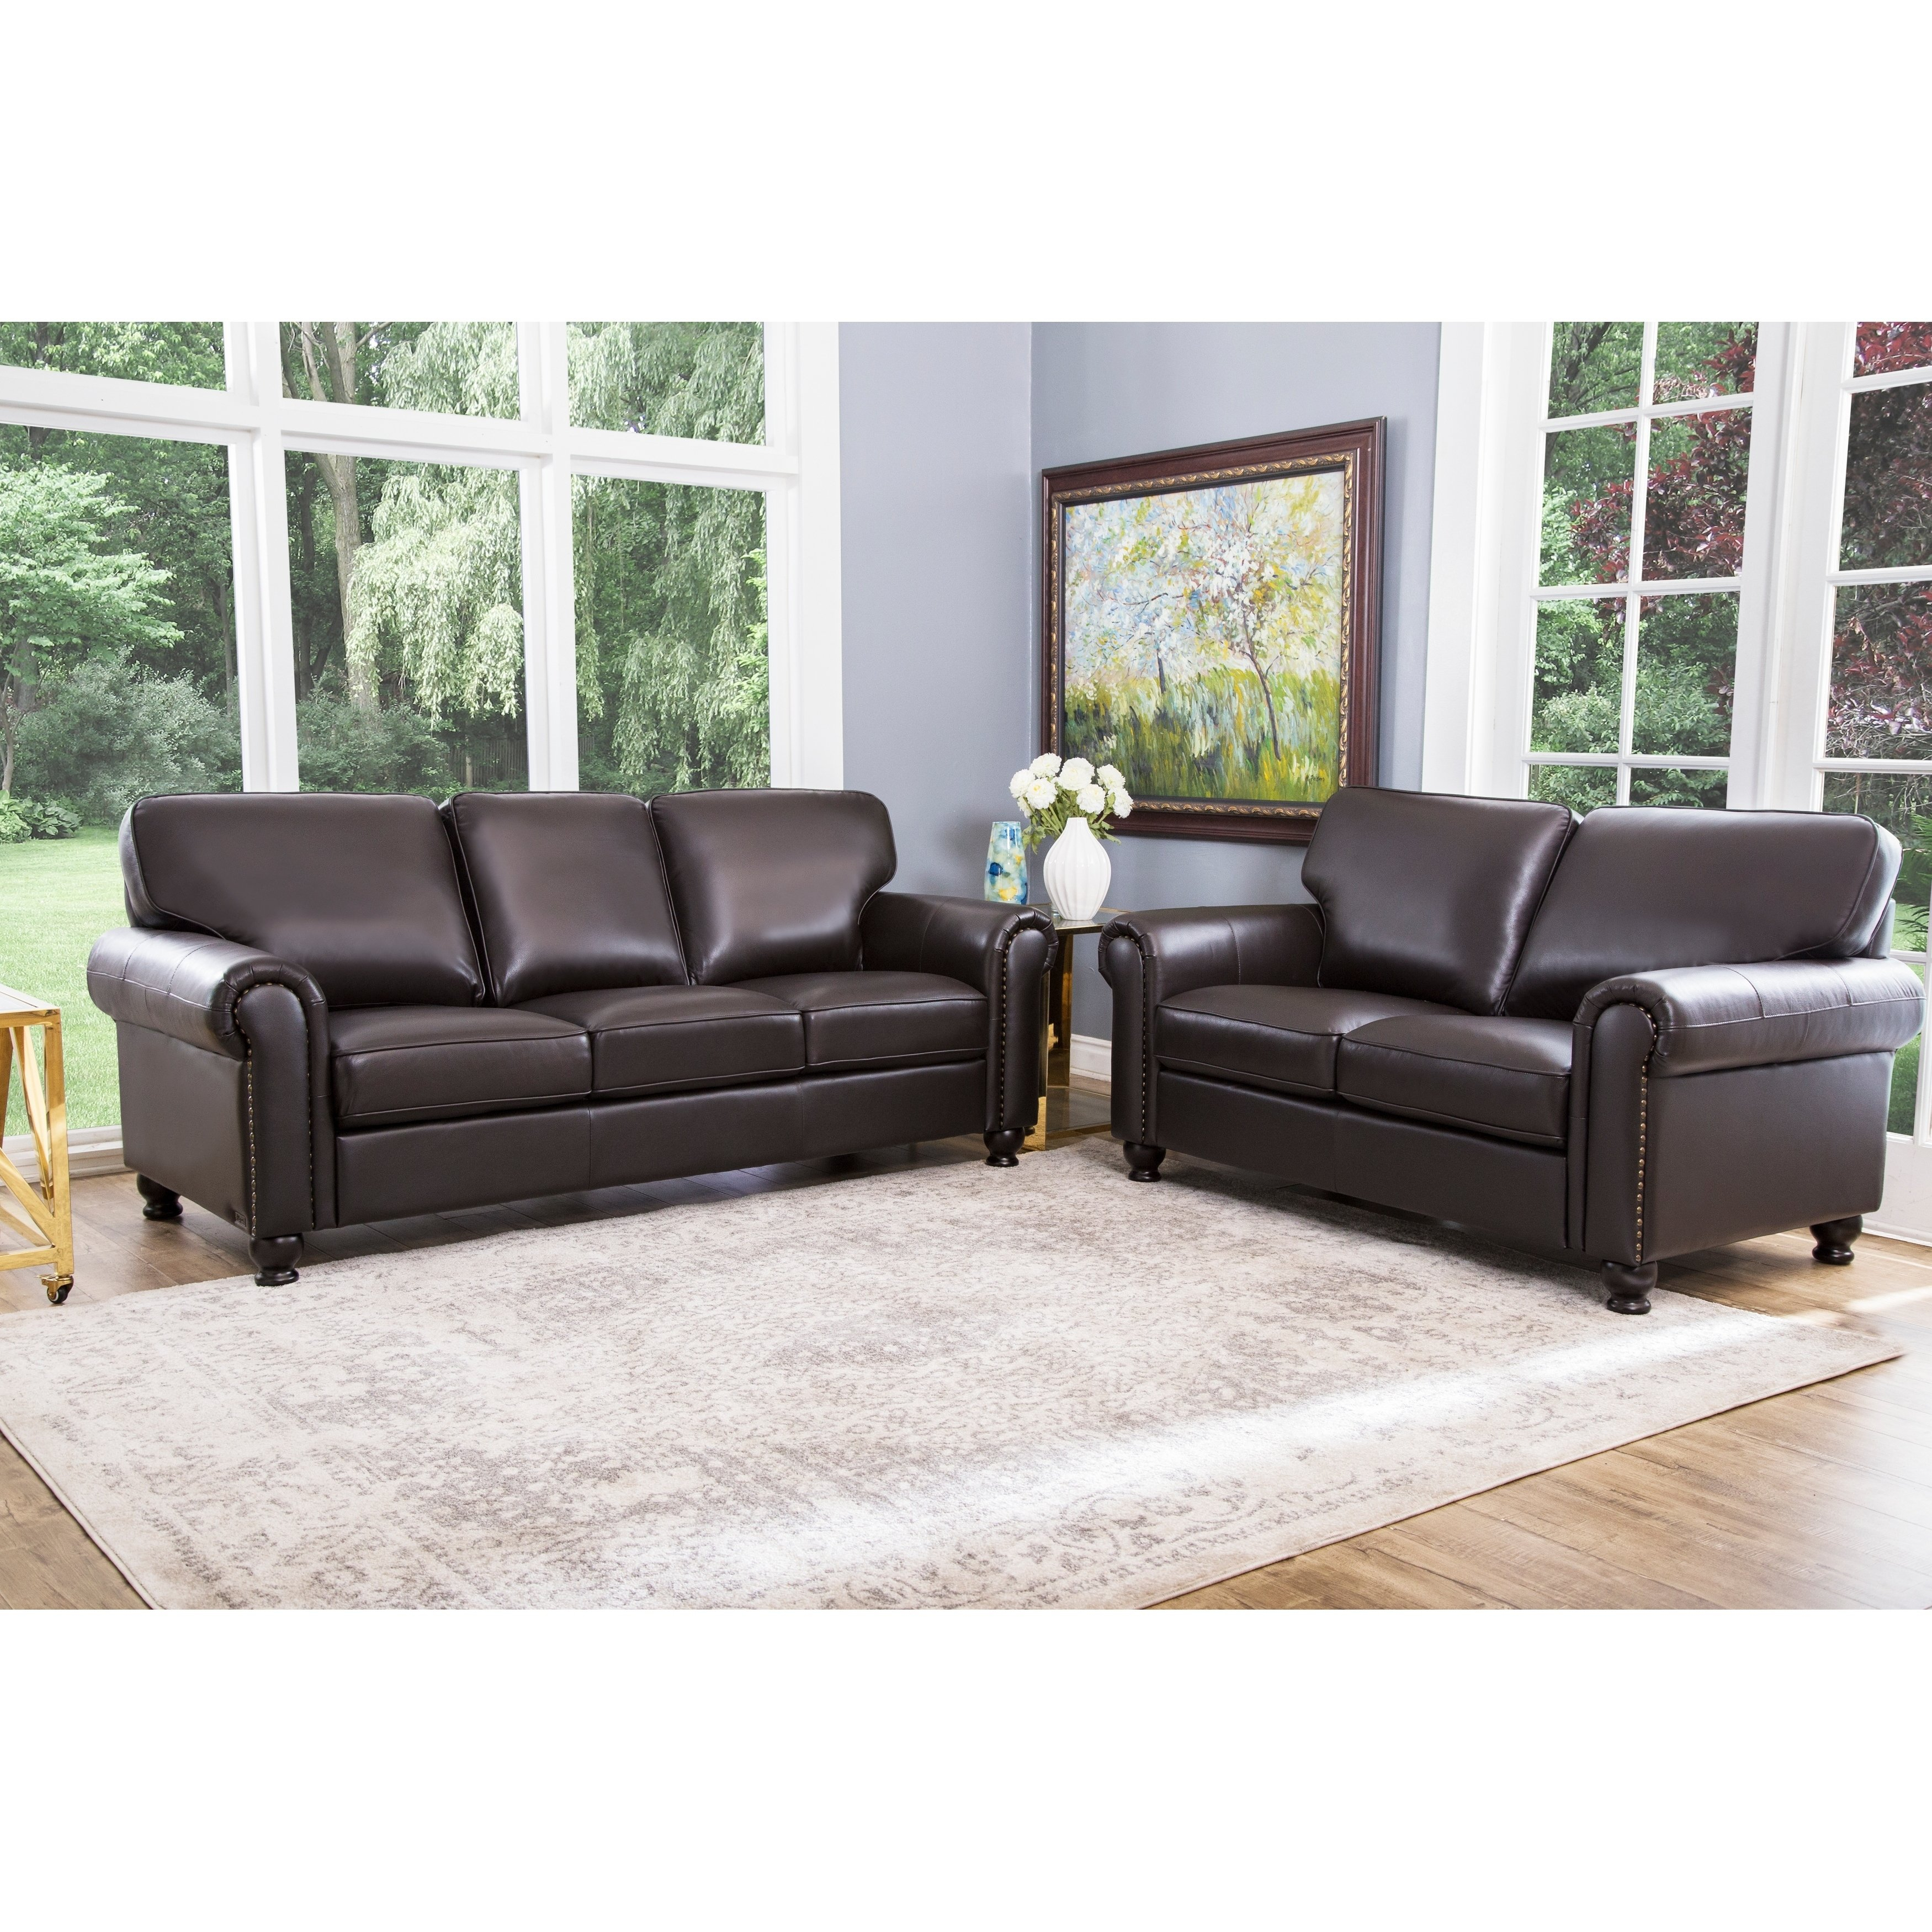 Shop Abson London Top Grain Leather 2 Piece Living Room Set Free for Living Room Set